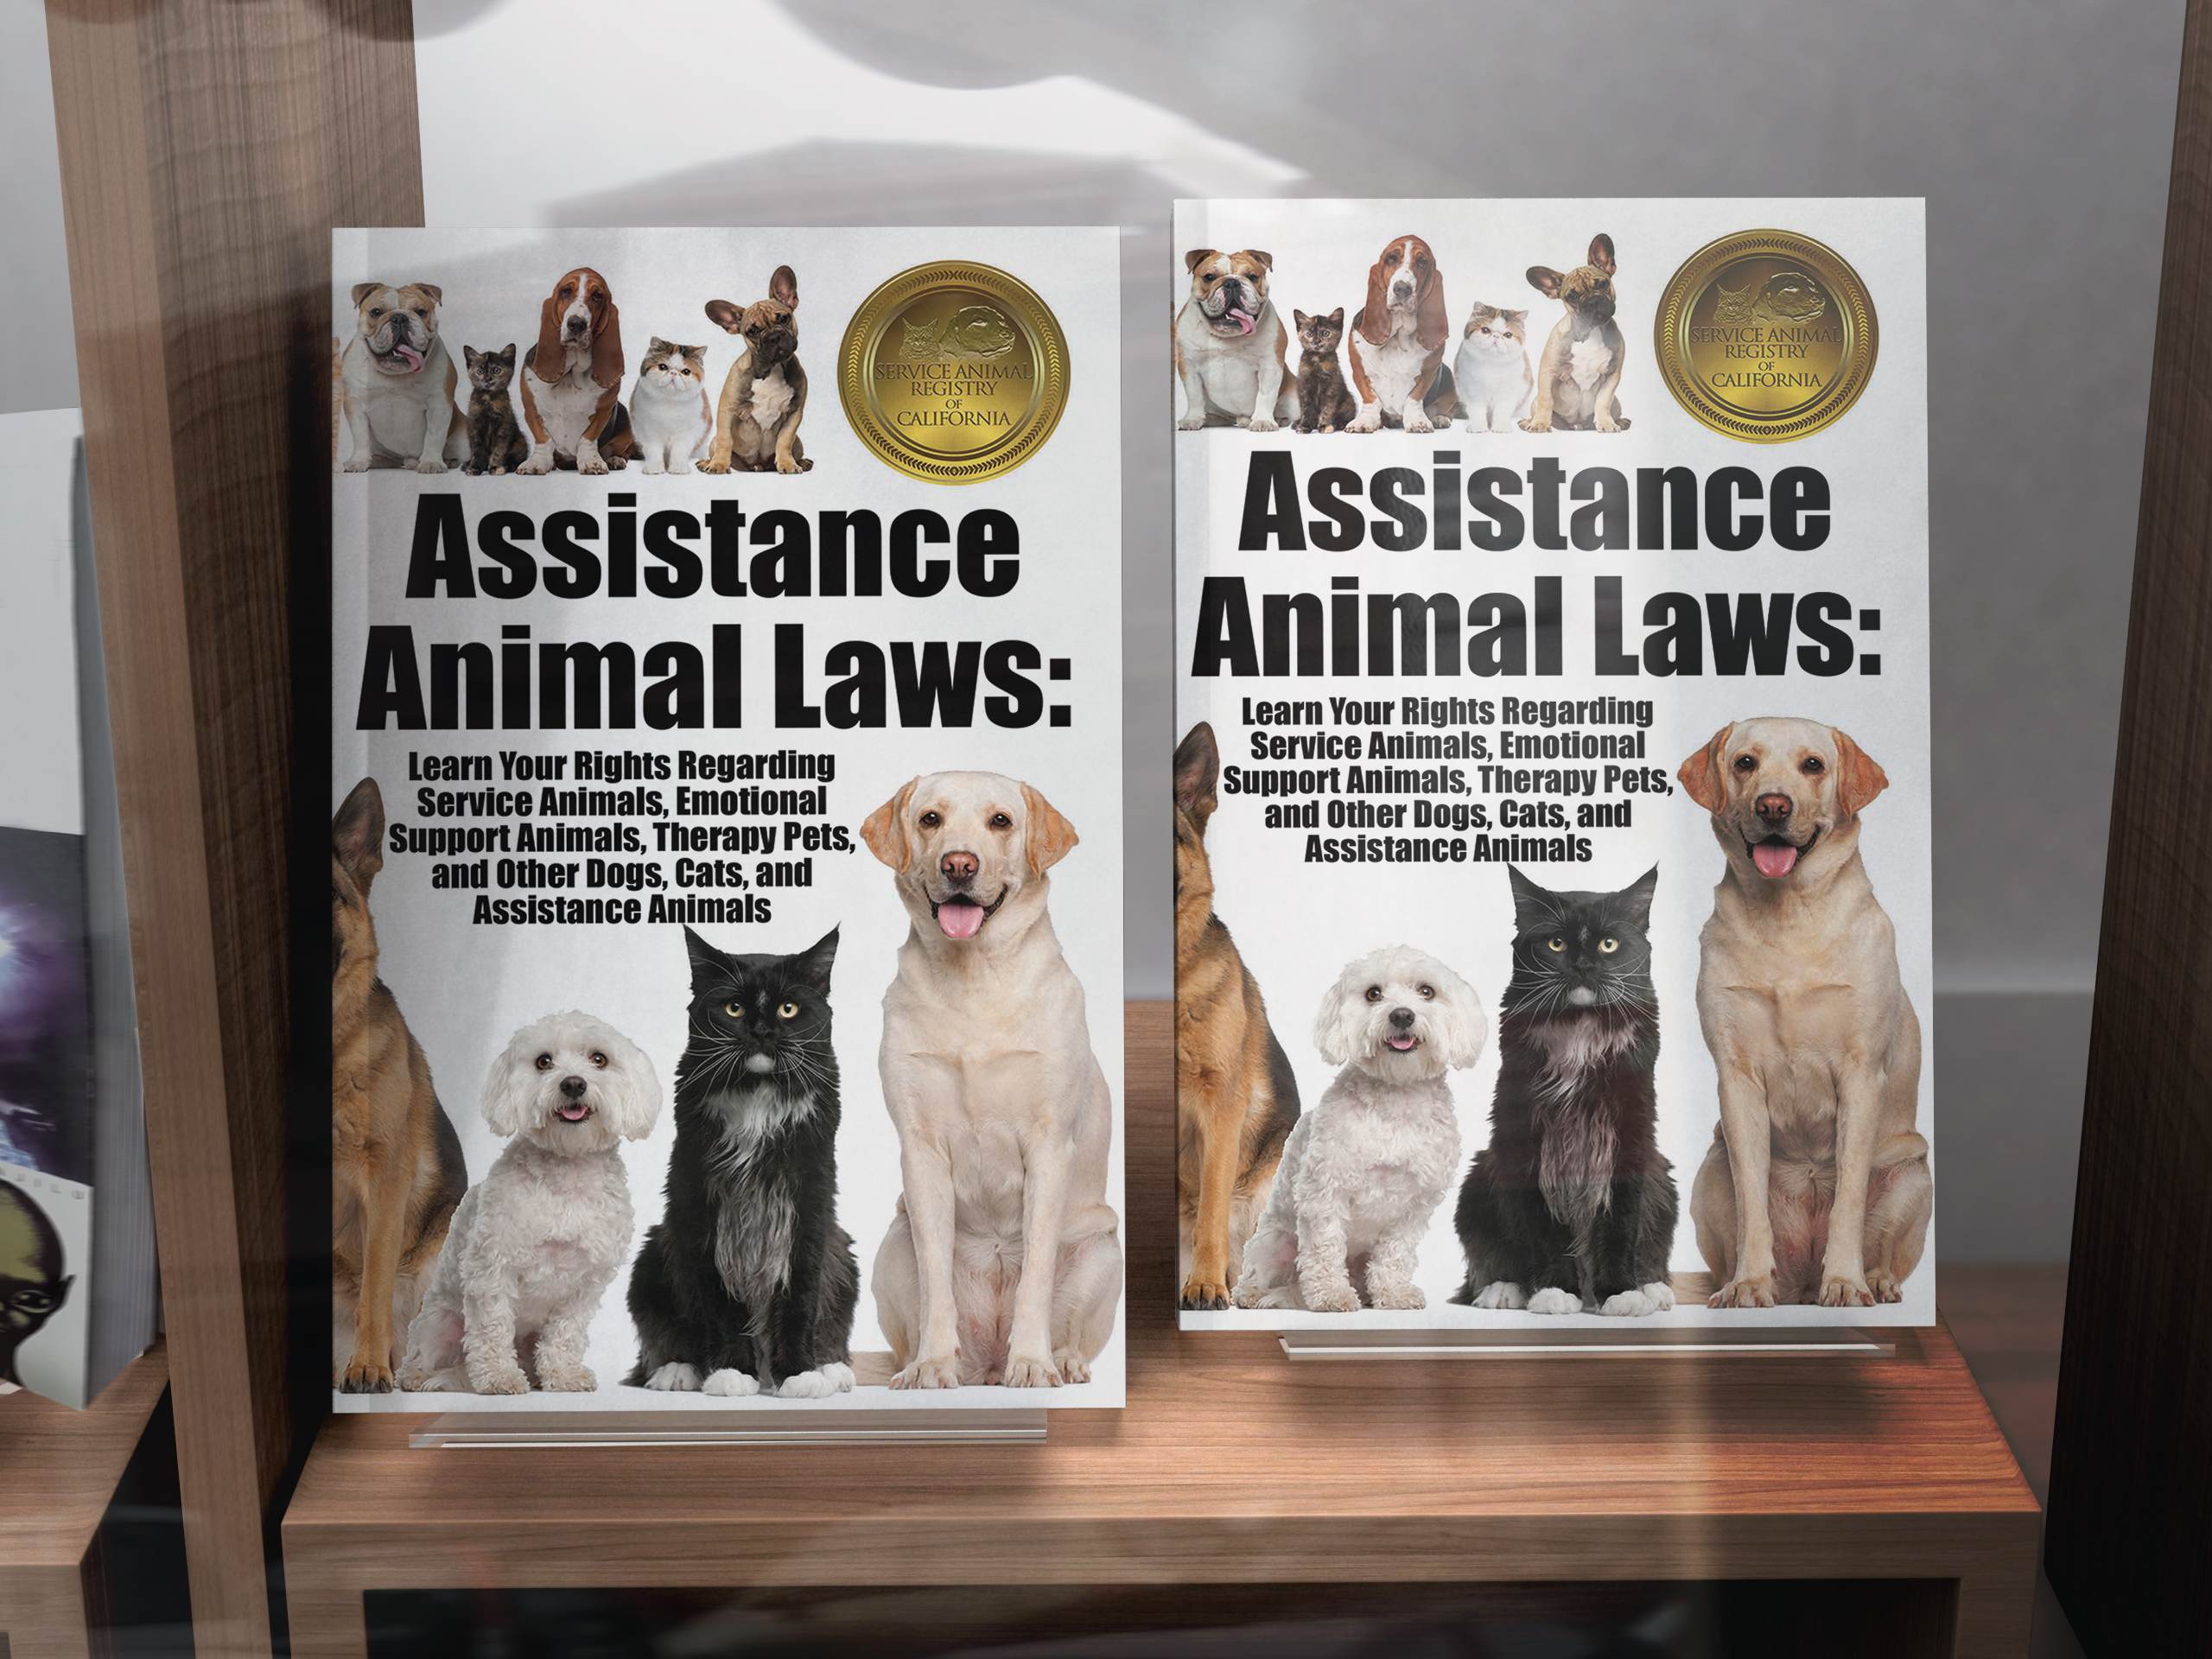 Although certification of a service animal is not required why do assistance animal laws learn your rights regarding service animals emotional support animals therapy pets and other dogs cats and assistance animals xflitez Images